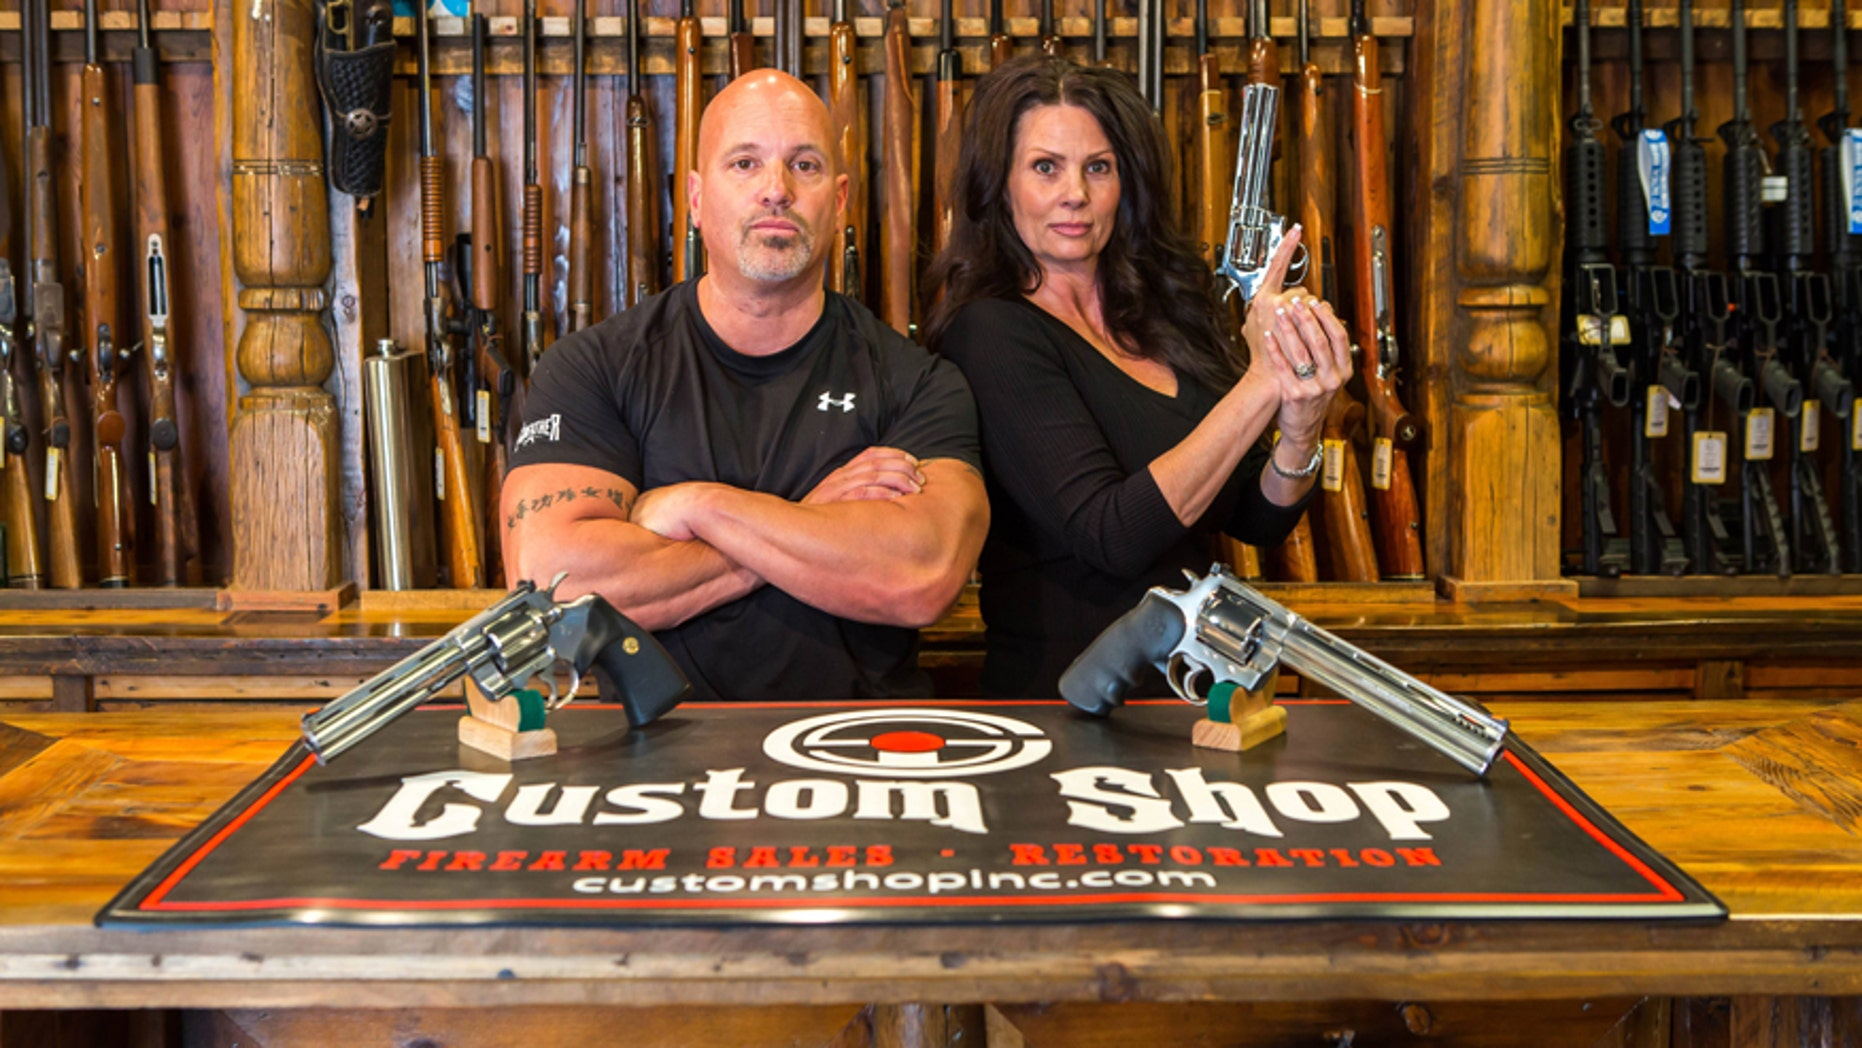 """Lou Tuminaro and his wife Theresa of """"The Gunfather"""" pose in their Hamilton, Montana store The Custom Shop."""